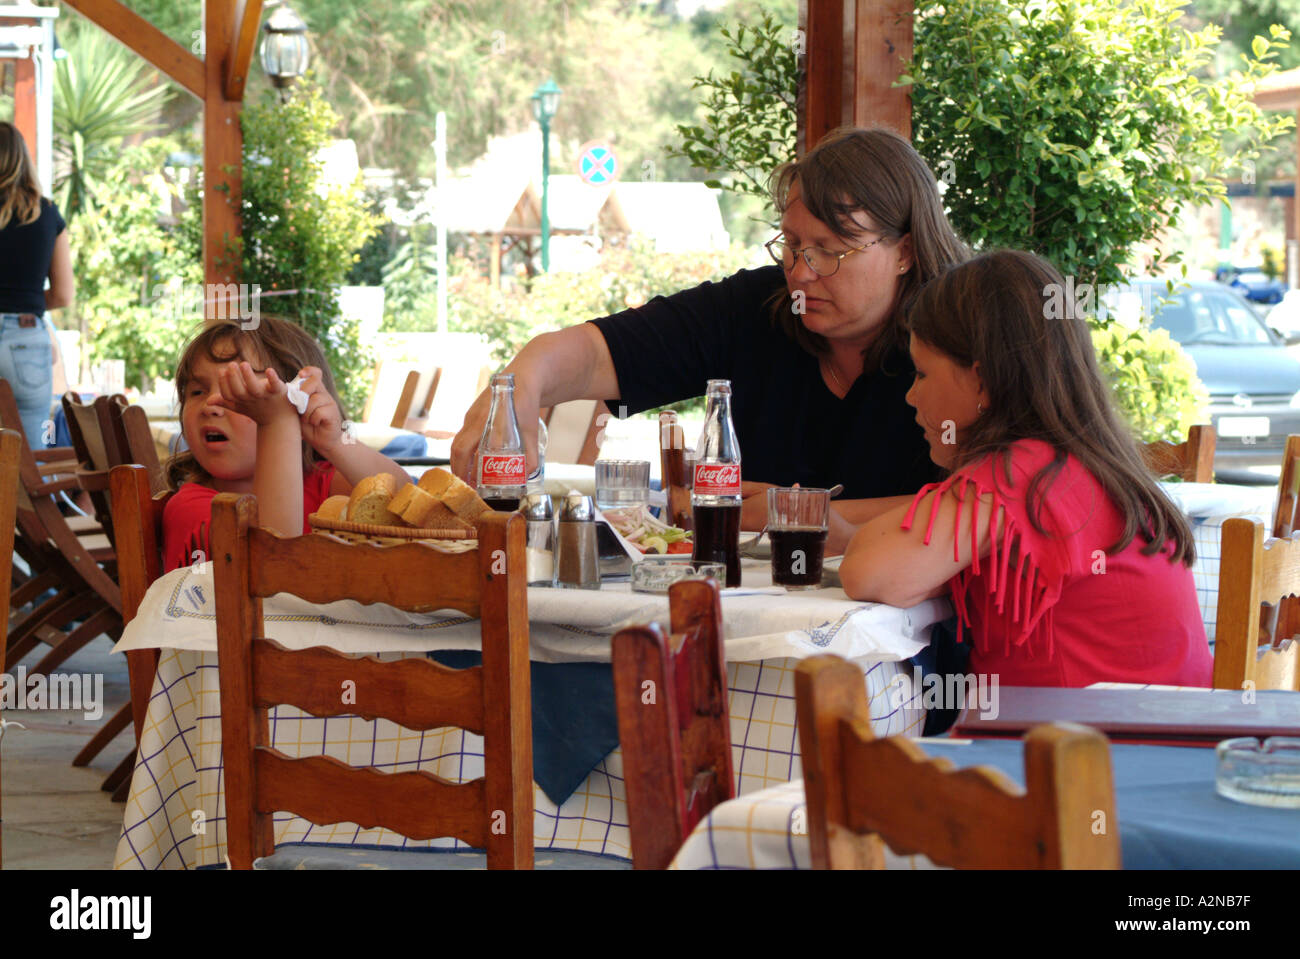 north greece single parents Single parents face several challenges when it comes to vacationing with their kids – not least of which is keeping costs under control  single parent vacations.